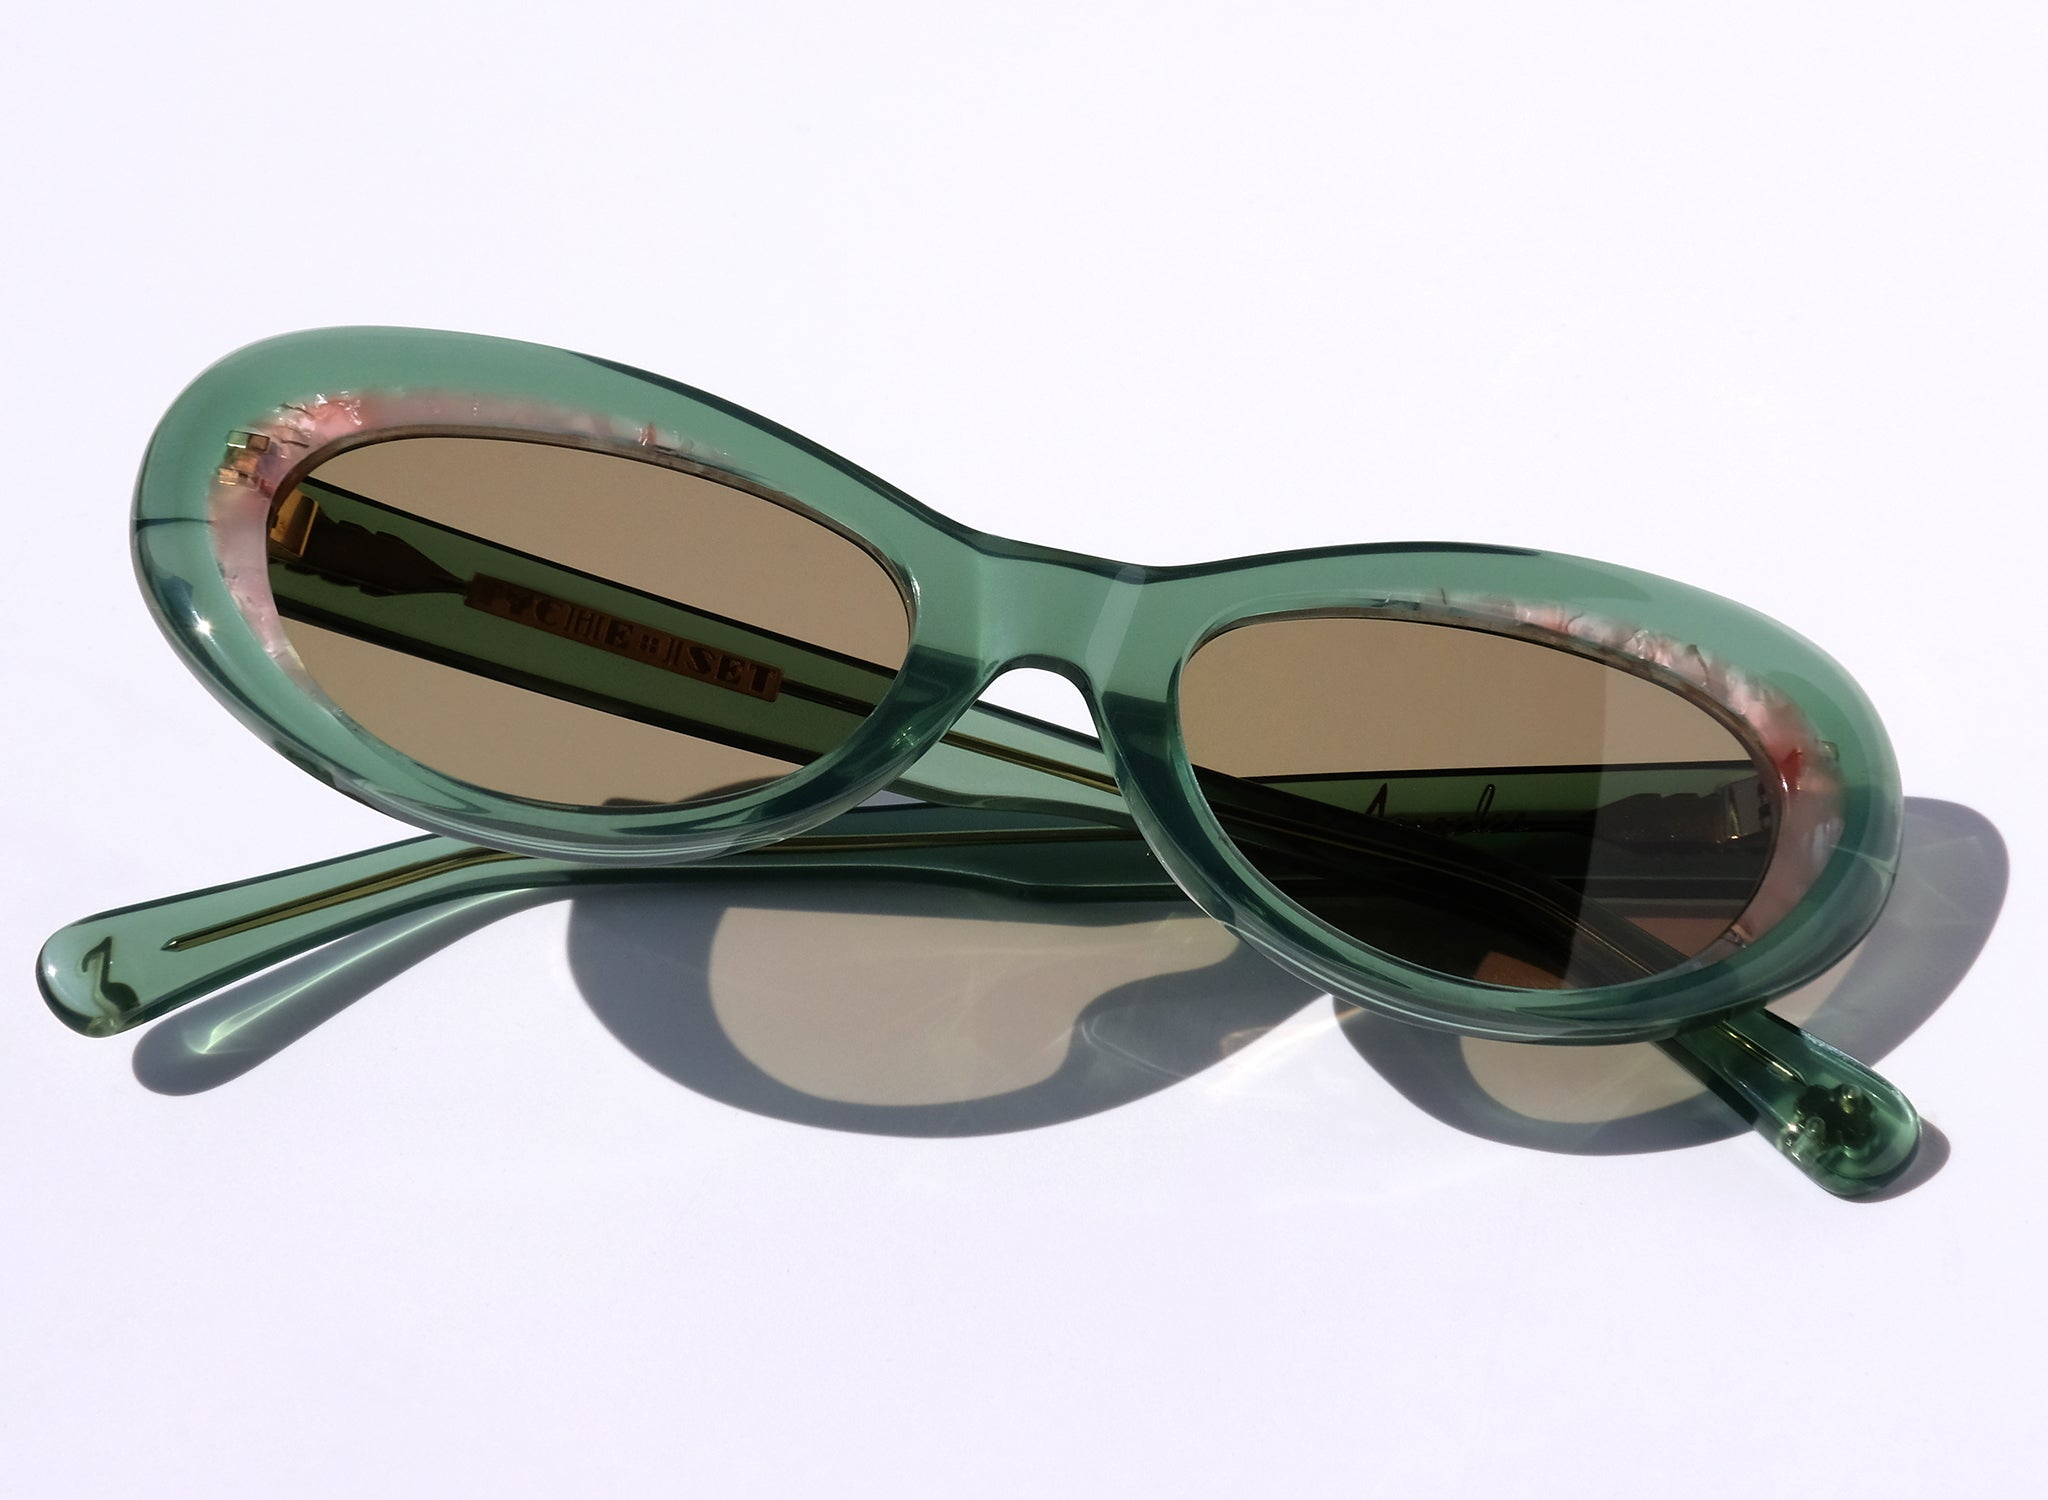 OCEANA IN WATERMELON, LIGHT GREEN AND PINK CAT EYE SUNGLASSES